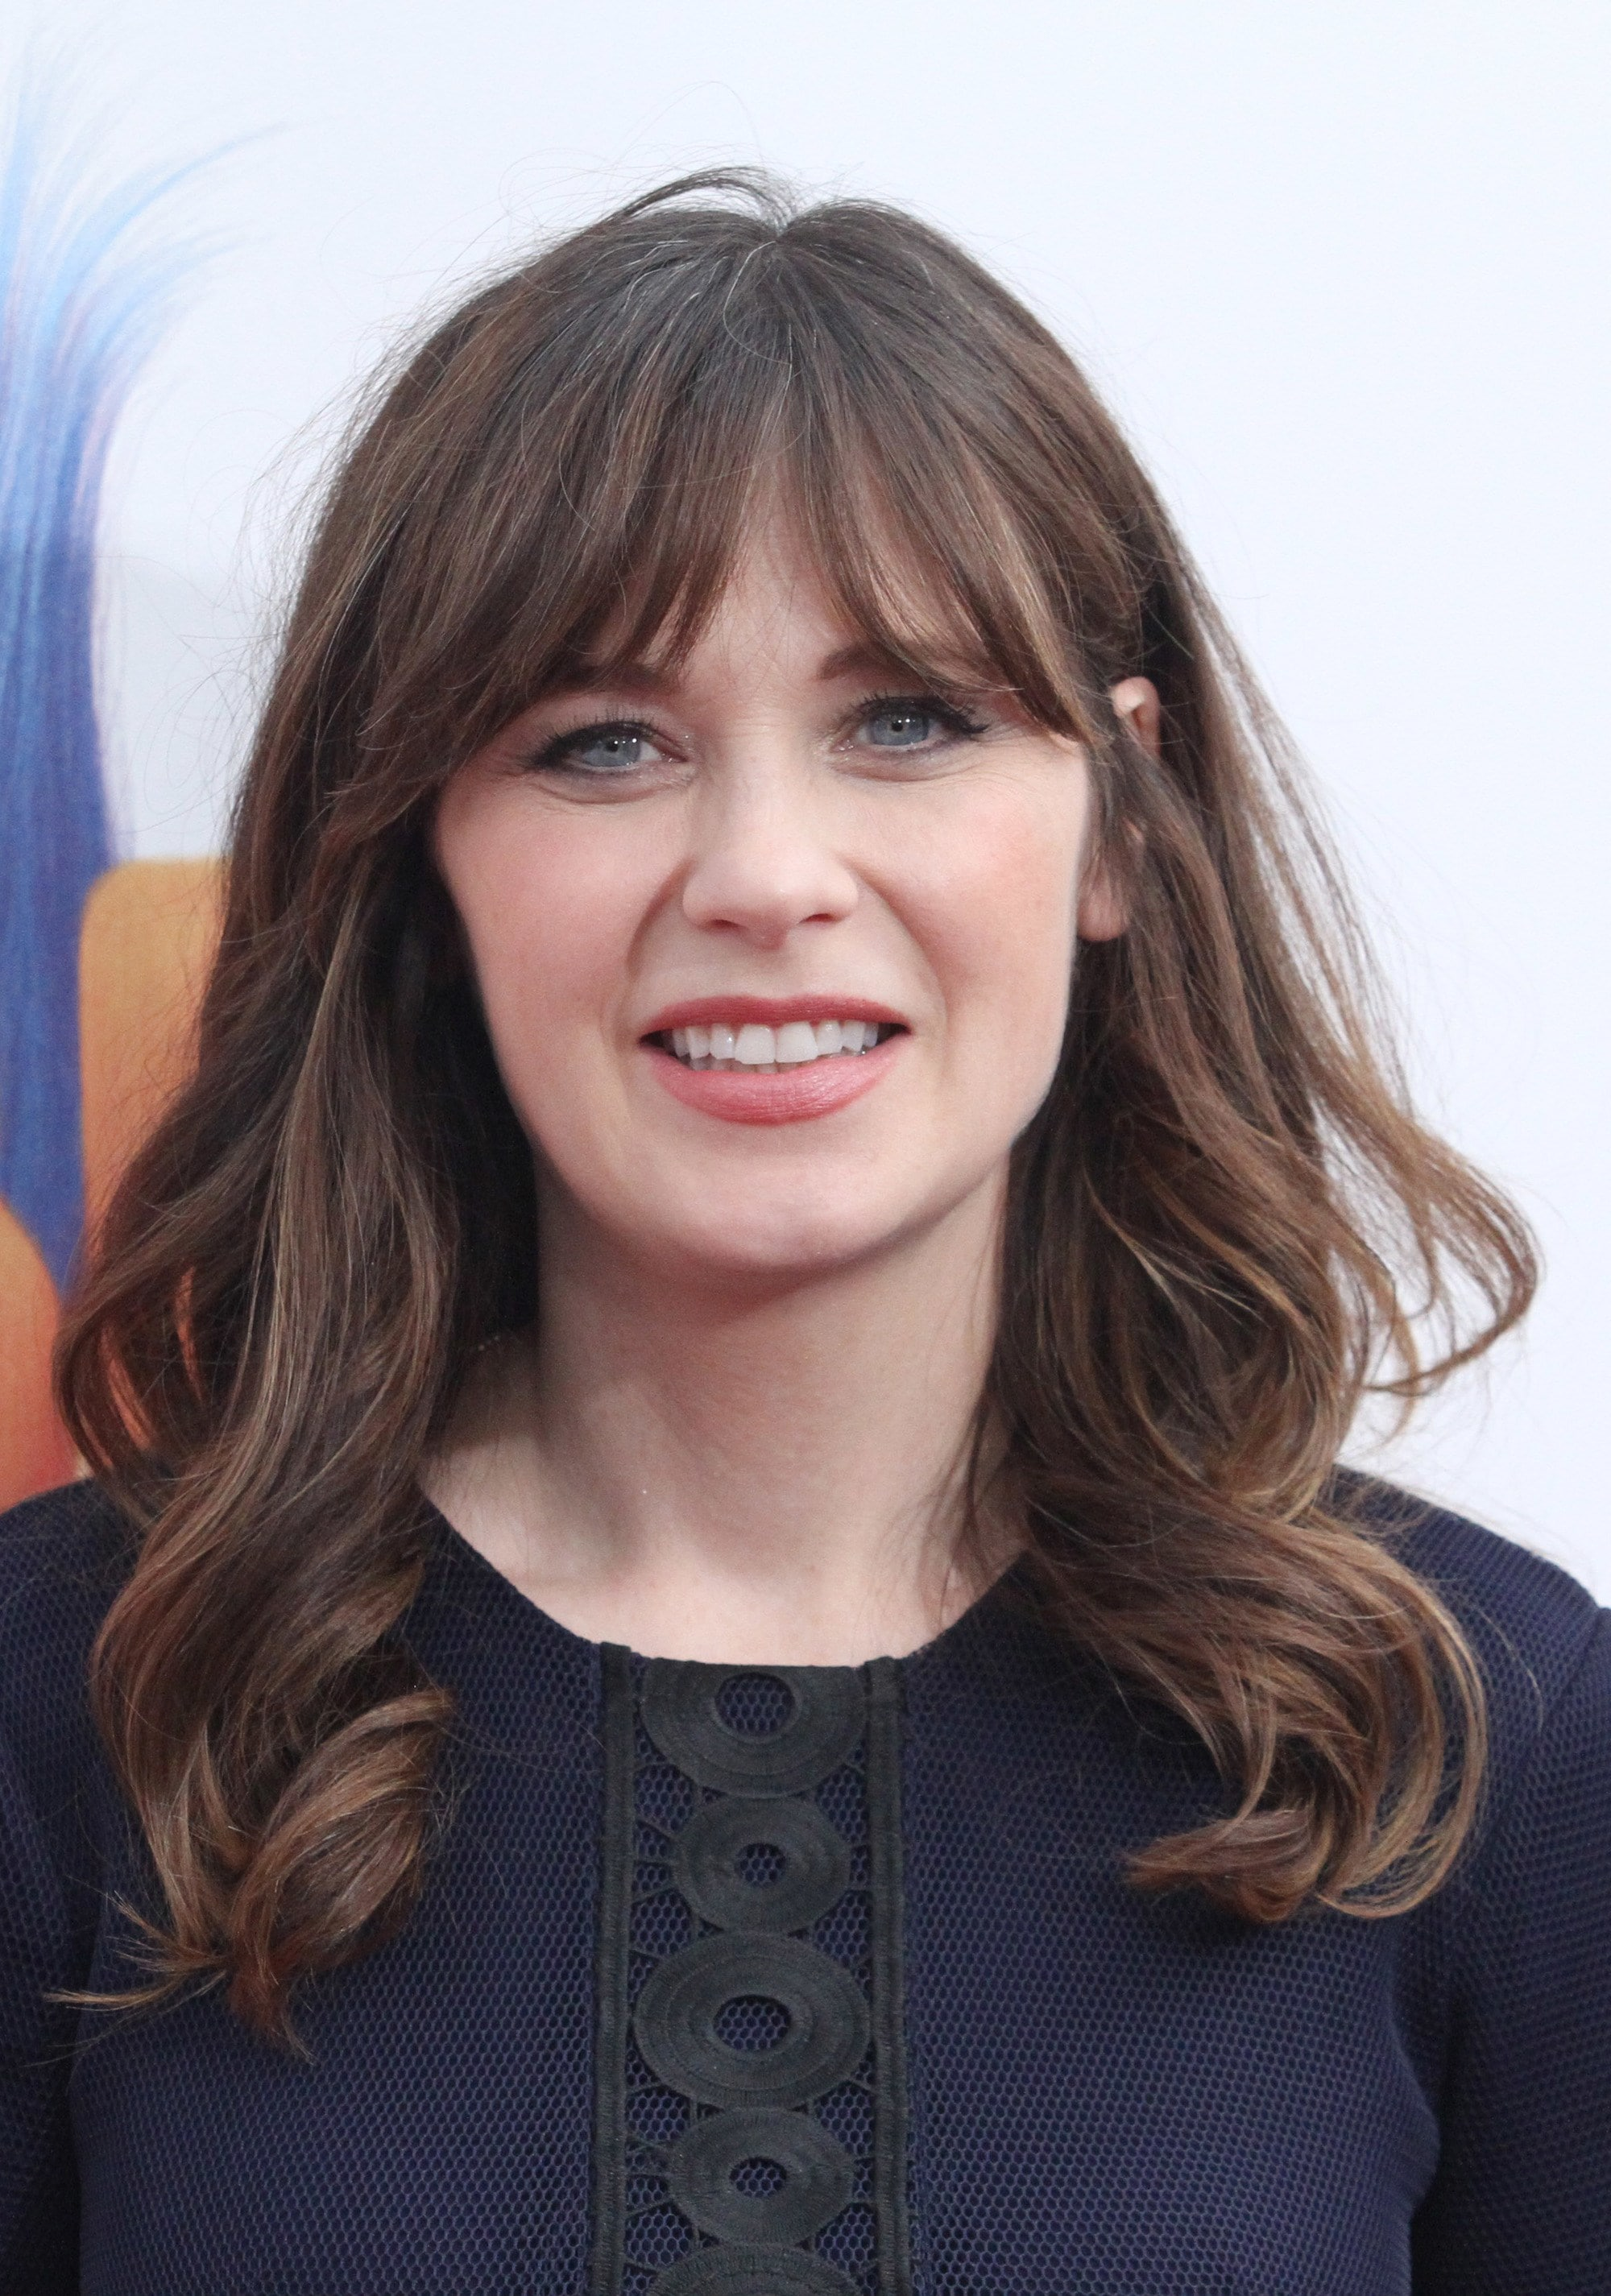 Wavy Hair With Bangs 7 Star Studded Looks To Try Now